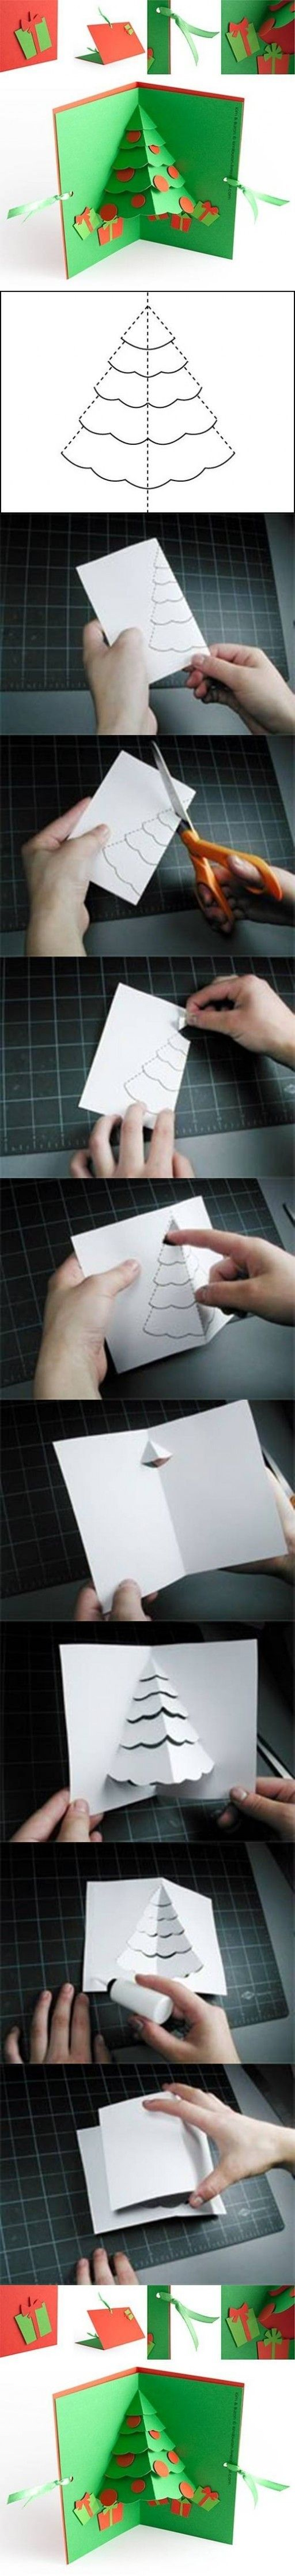 How to make Christmas Tree Pop Up Card step by step DIY